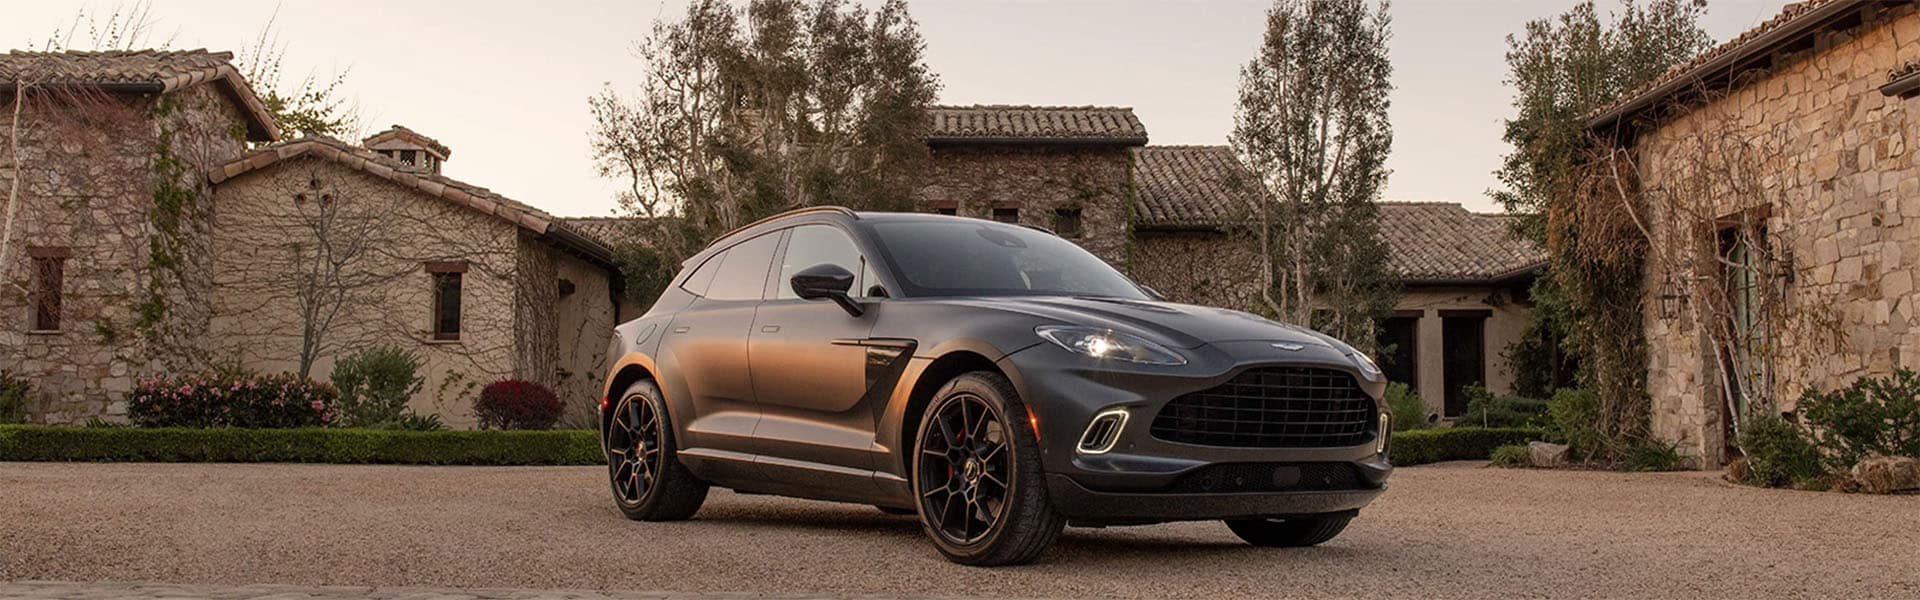 2021 Aston Martin DBX at sunset in front of a villa